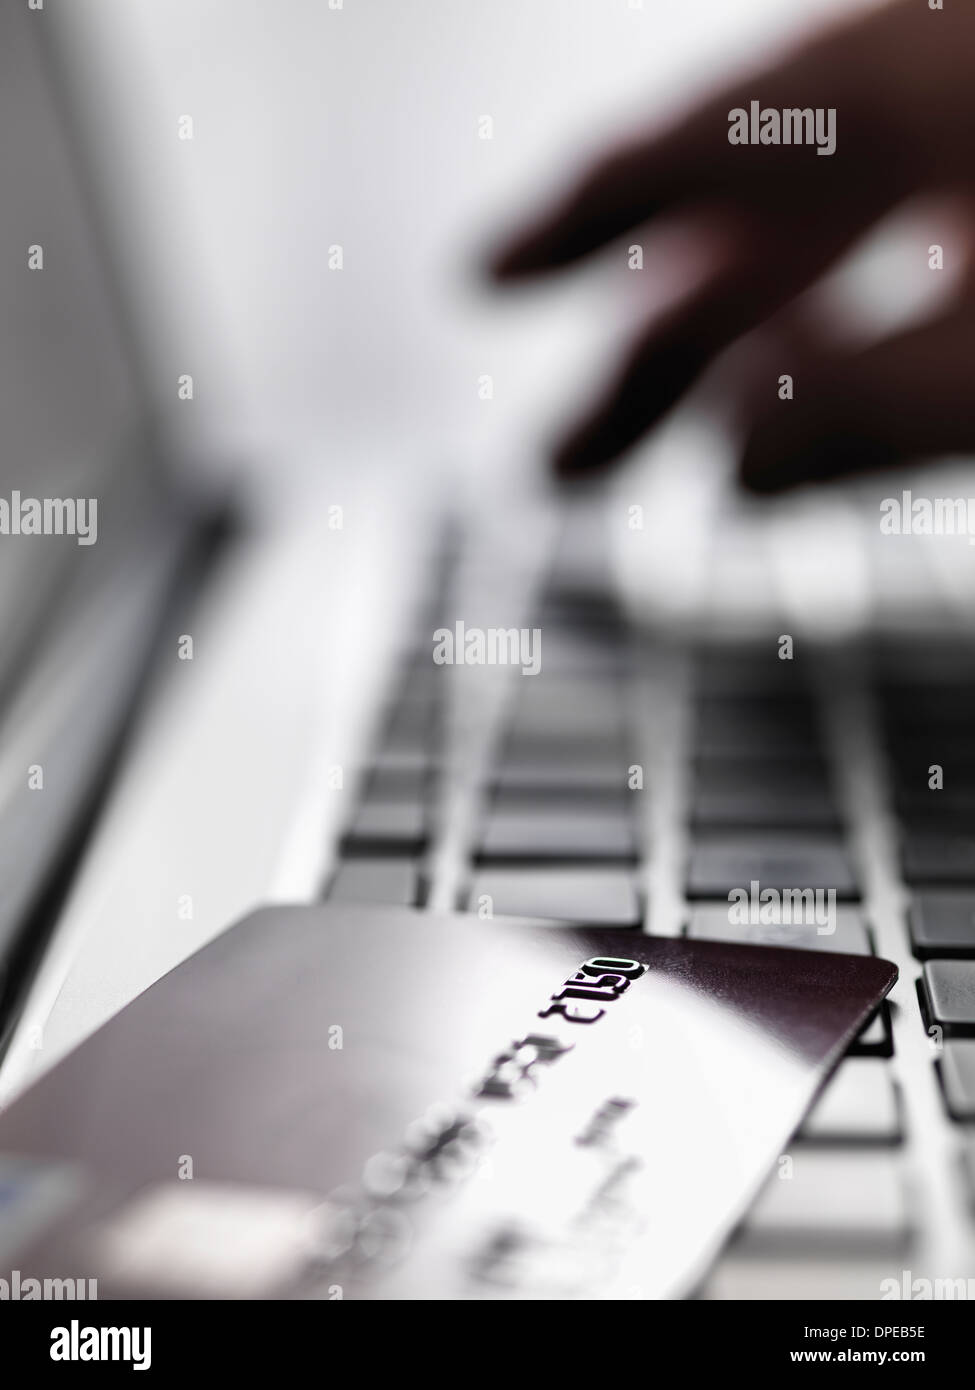 Hand tapping account details on laptop to illustrate internet shopping and internet fraud Stock Photo